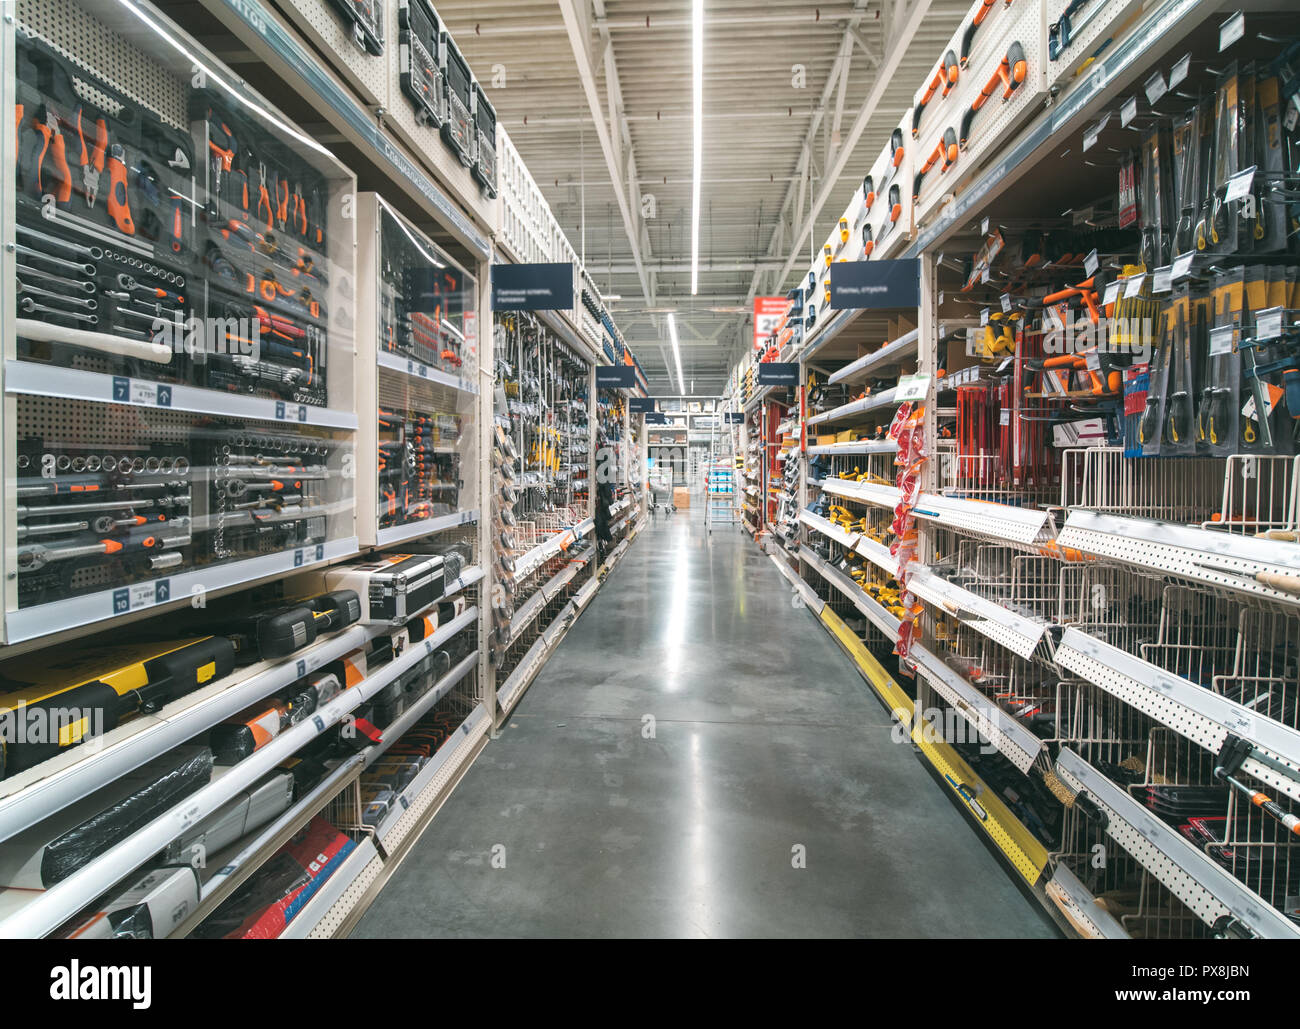 Store for home improvement and DIY  Warehouse aisle of